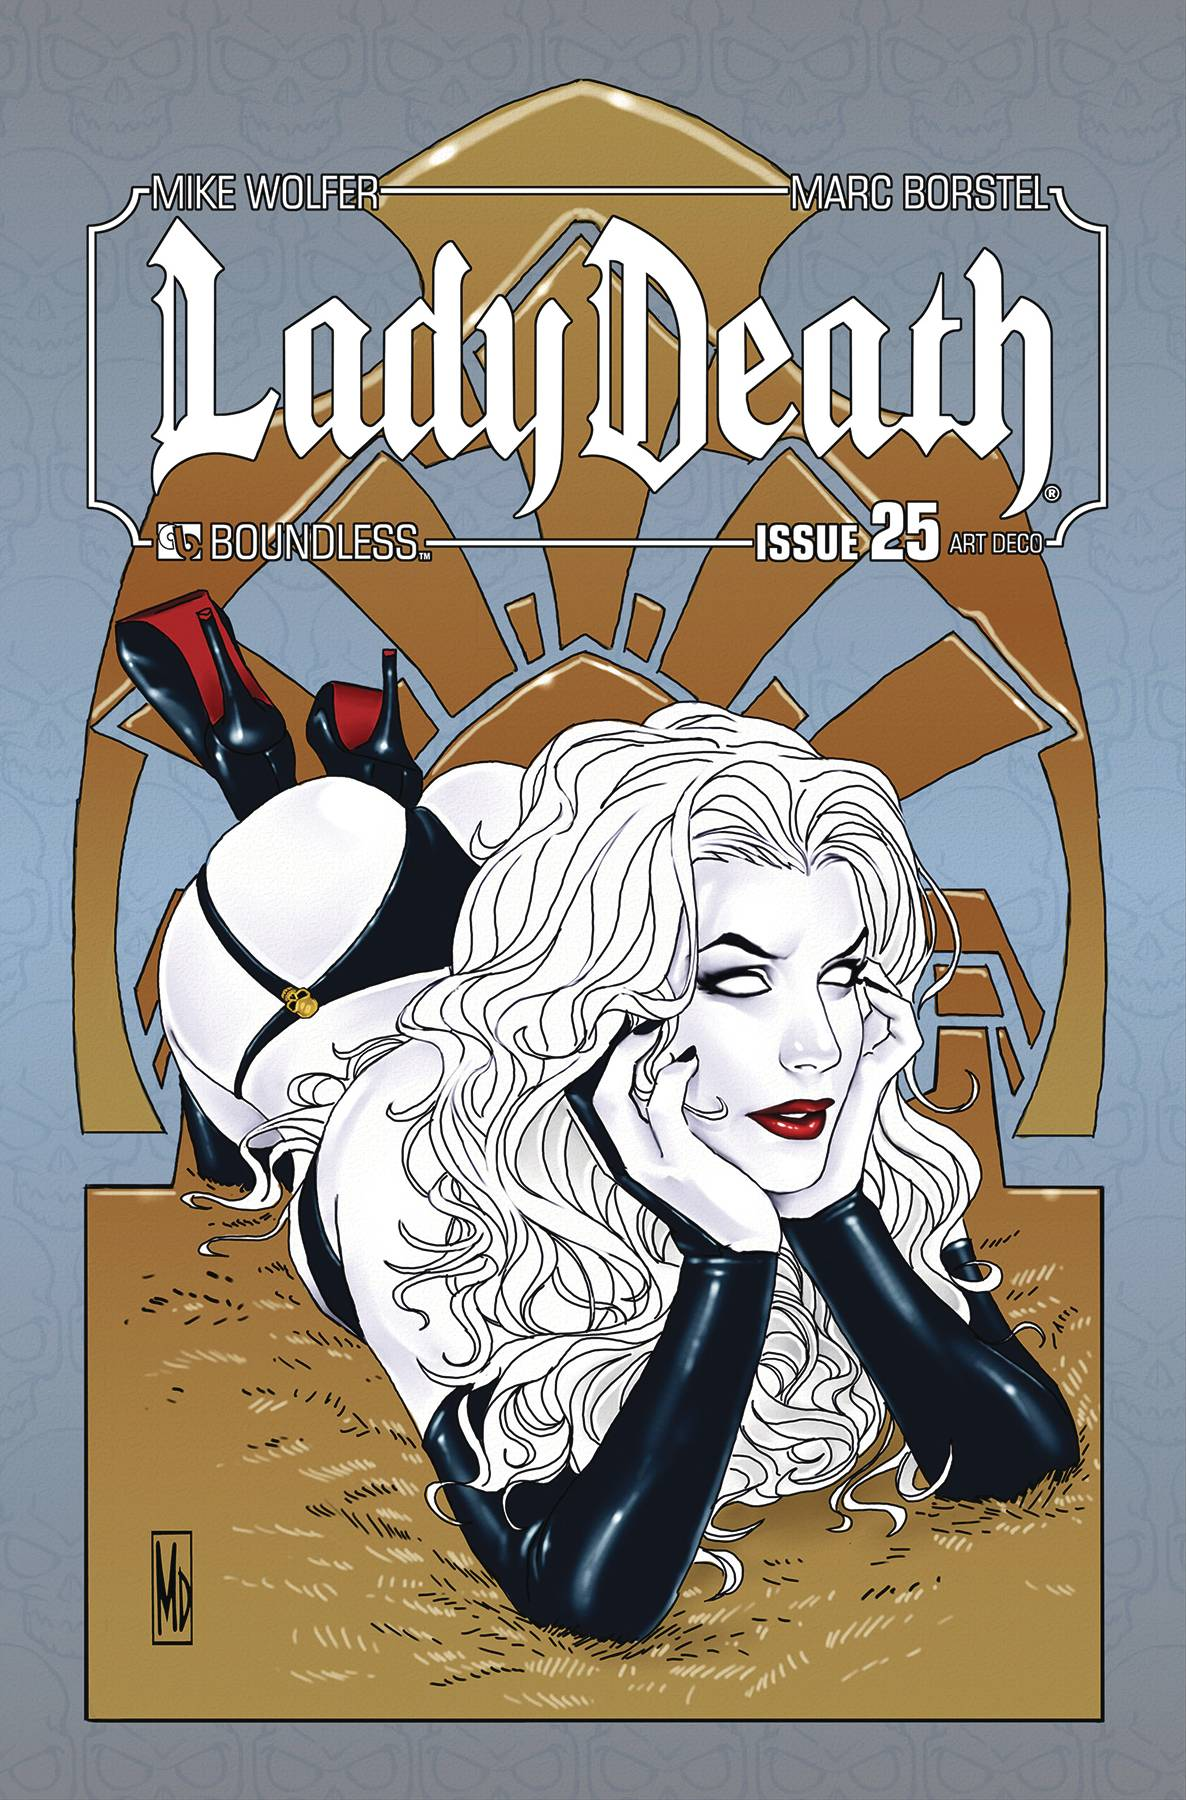 LADY DEATH #25 ART DECO VARIANT